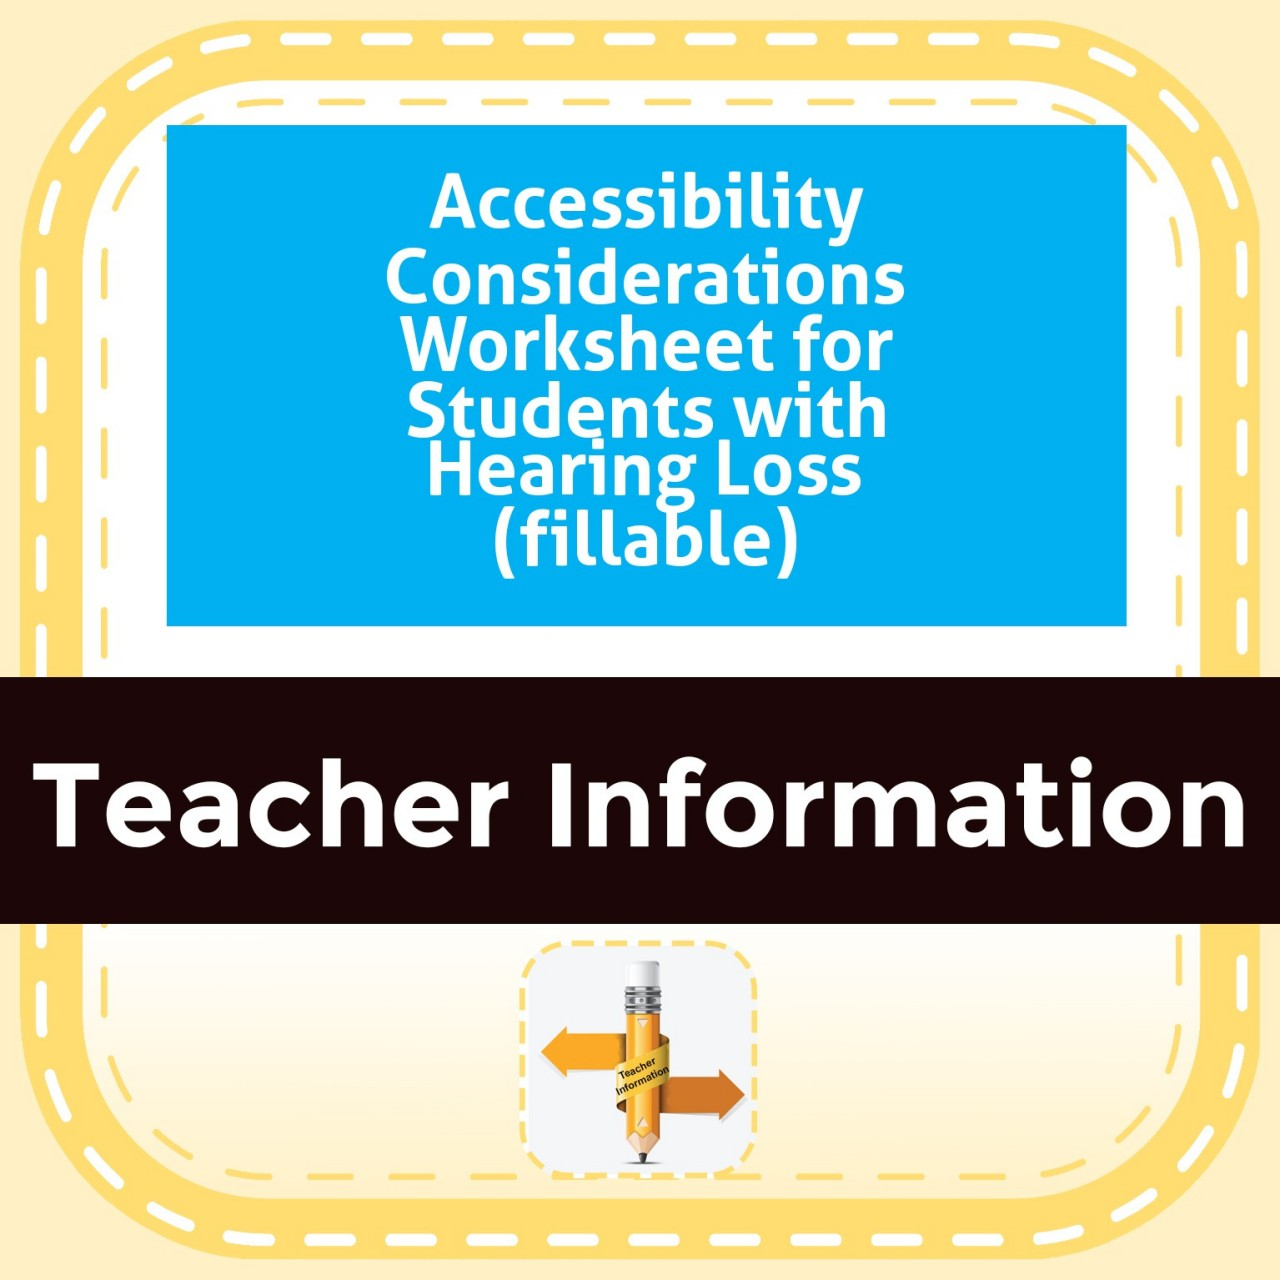 Accessibility Considerations Worksheet for Students with Hearing Loss (fillable)